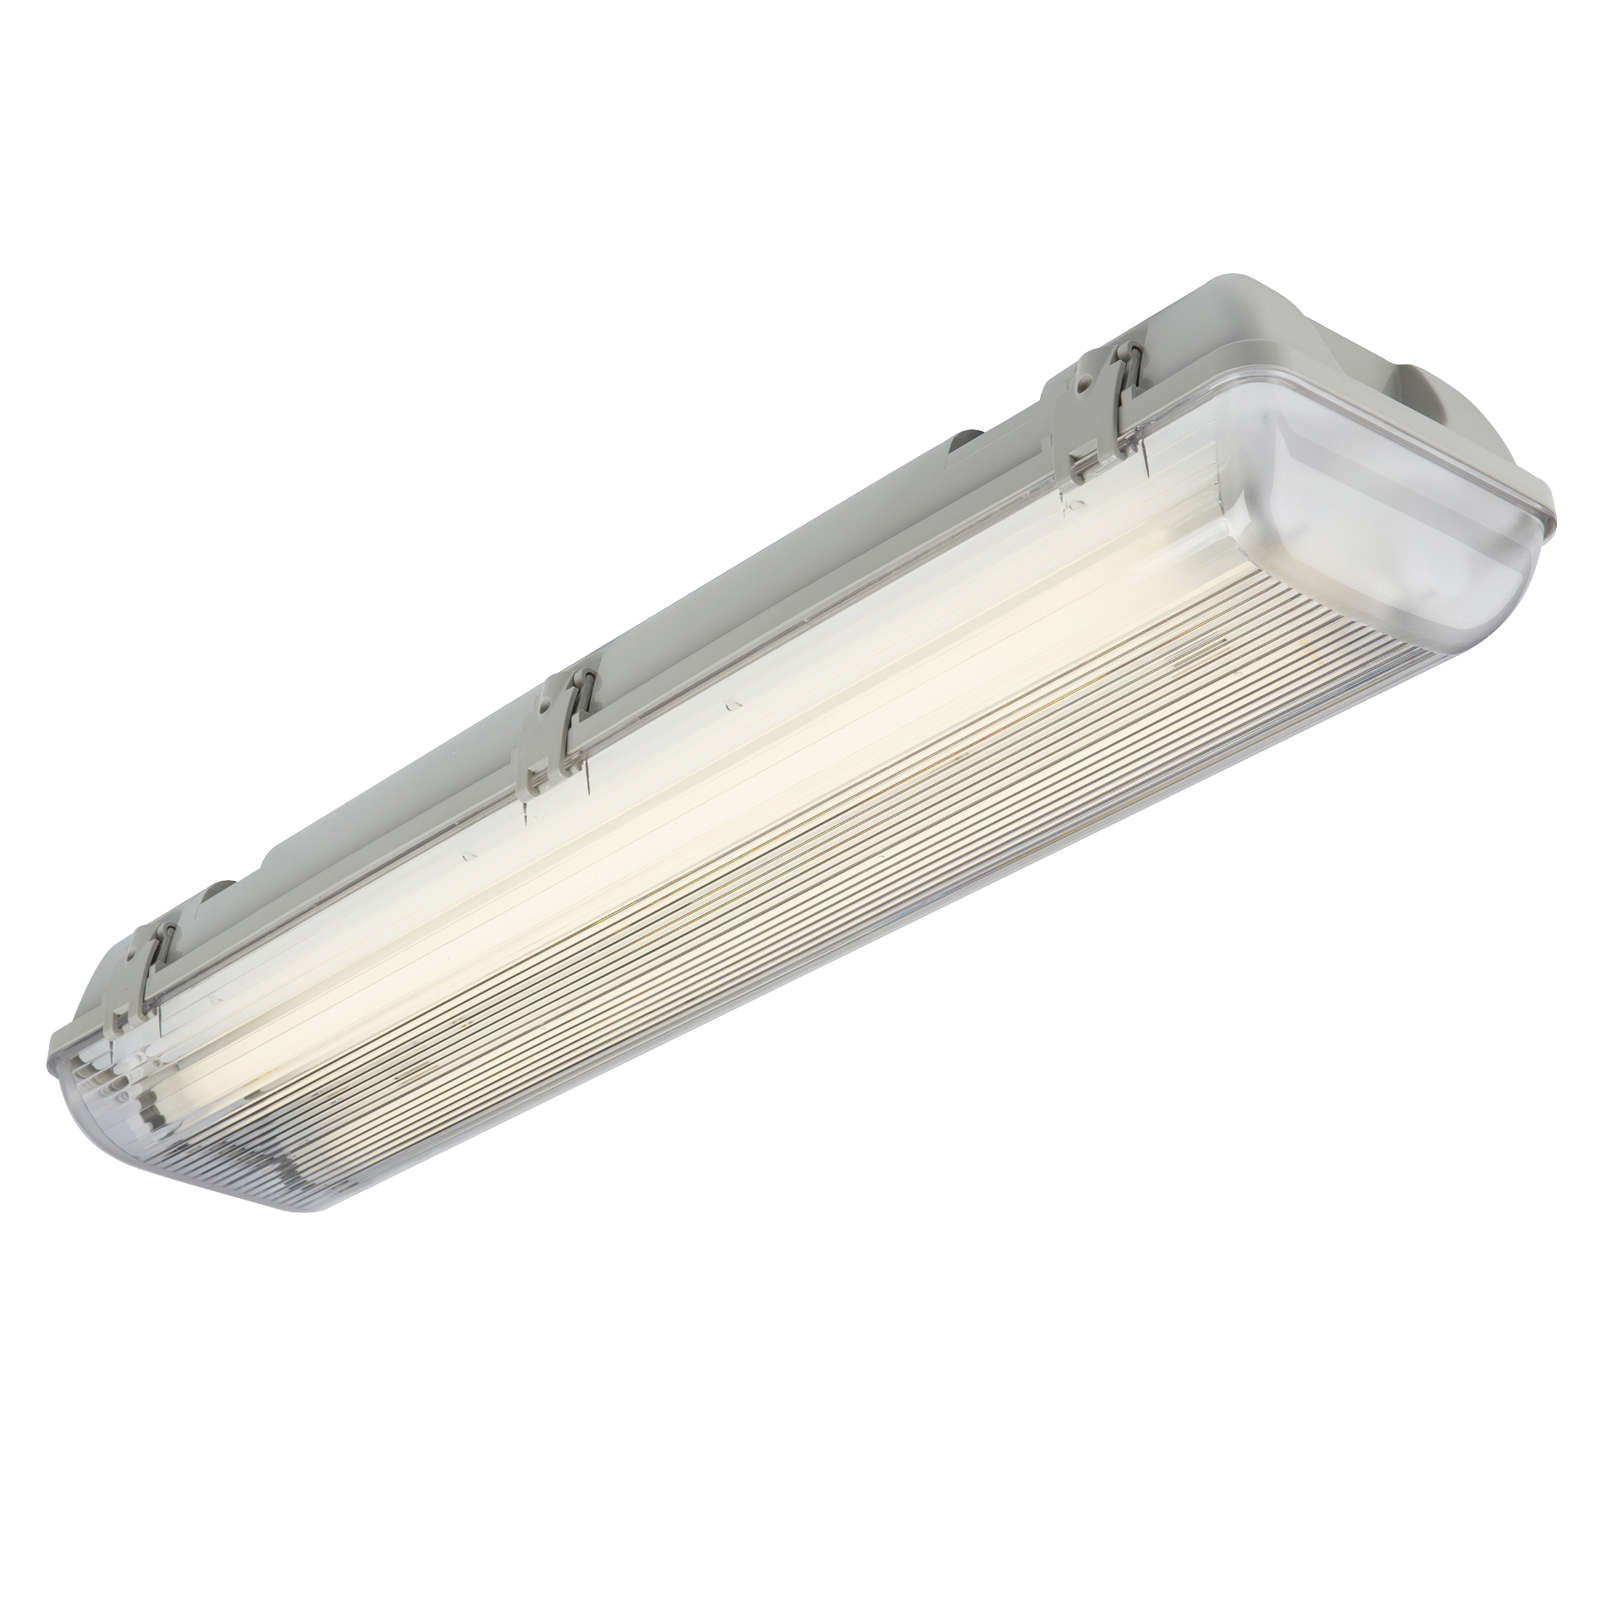 240V IP65 2x70W HF Twin Non-Corrosive Fluorescent Fitting